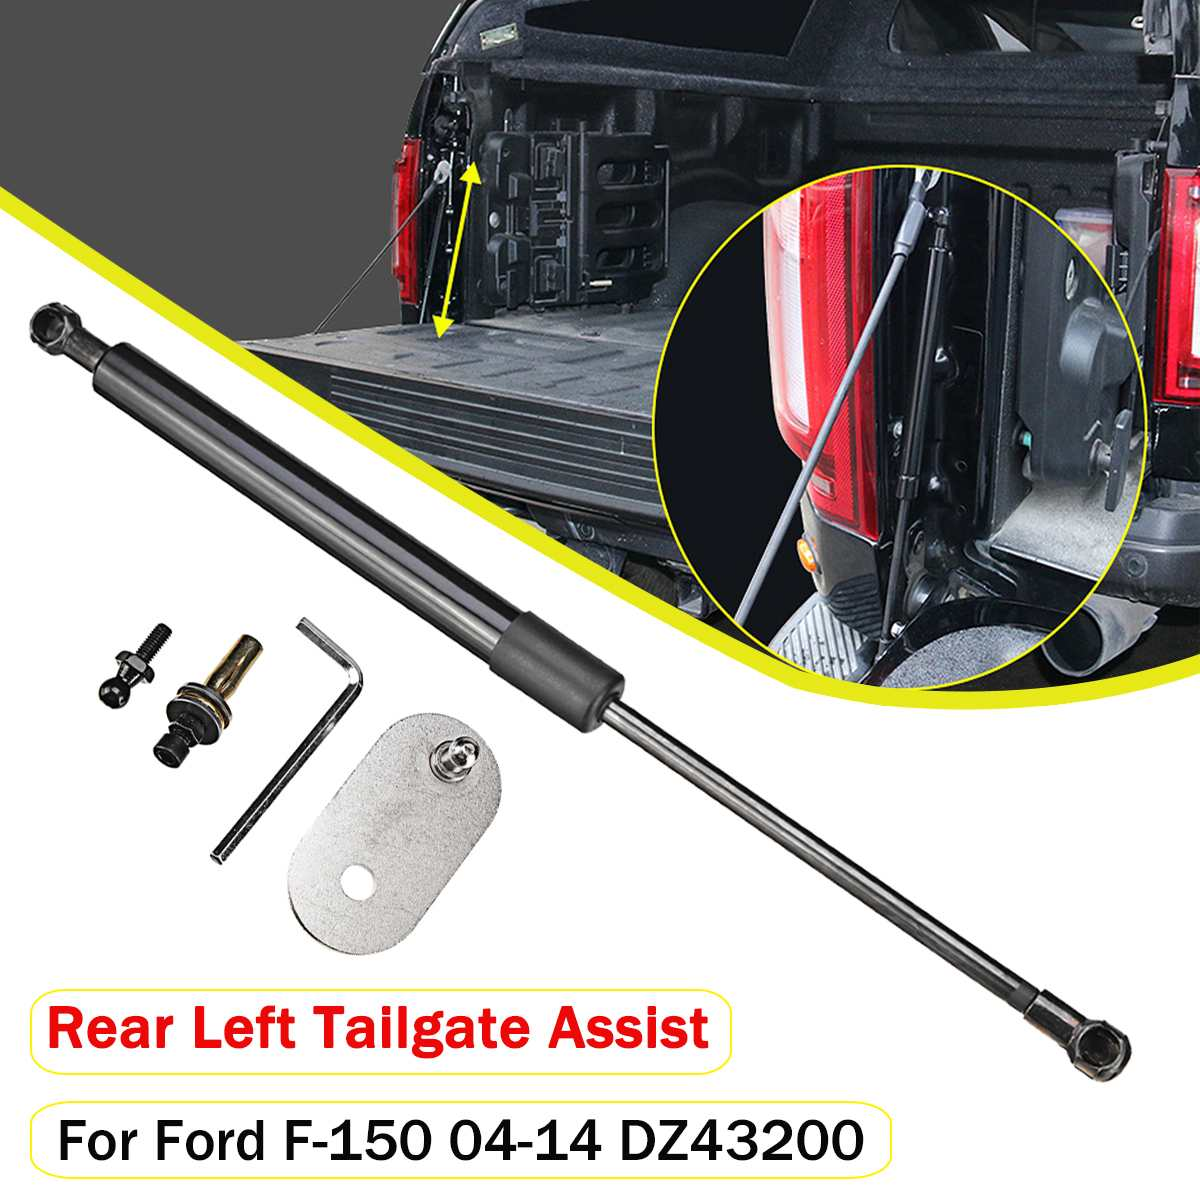 1Set Rear Trunk Tailgate Hydraulic Rod Shock Lift Struts Support Arm Bars DZ43200 For <font><b>Ford</b></font> <font><b>F150</b></font> 2004 2005 <font><b>2006</b></font> 2007 2008-2014 image